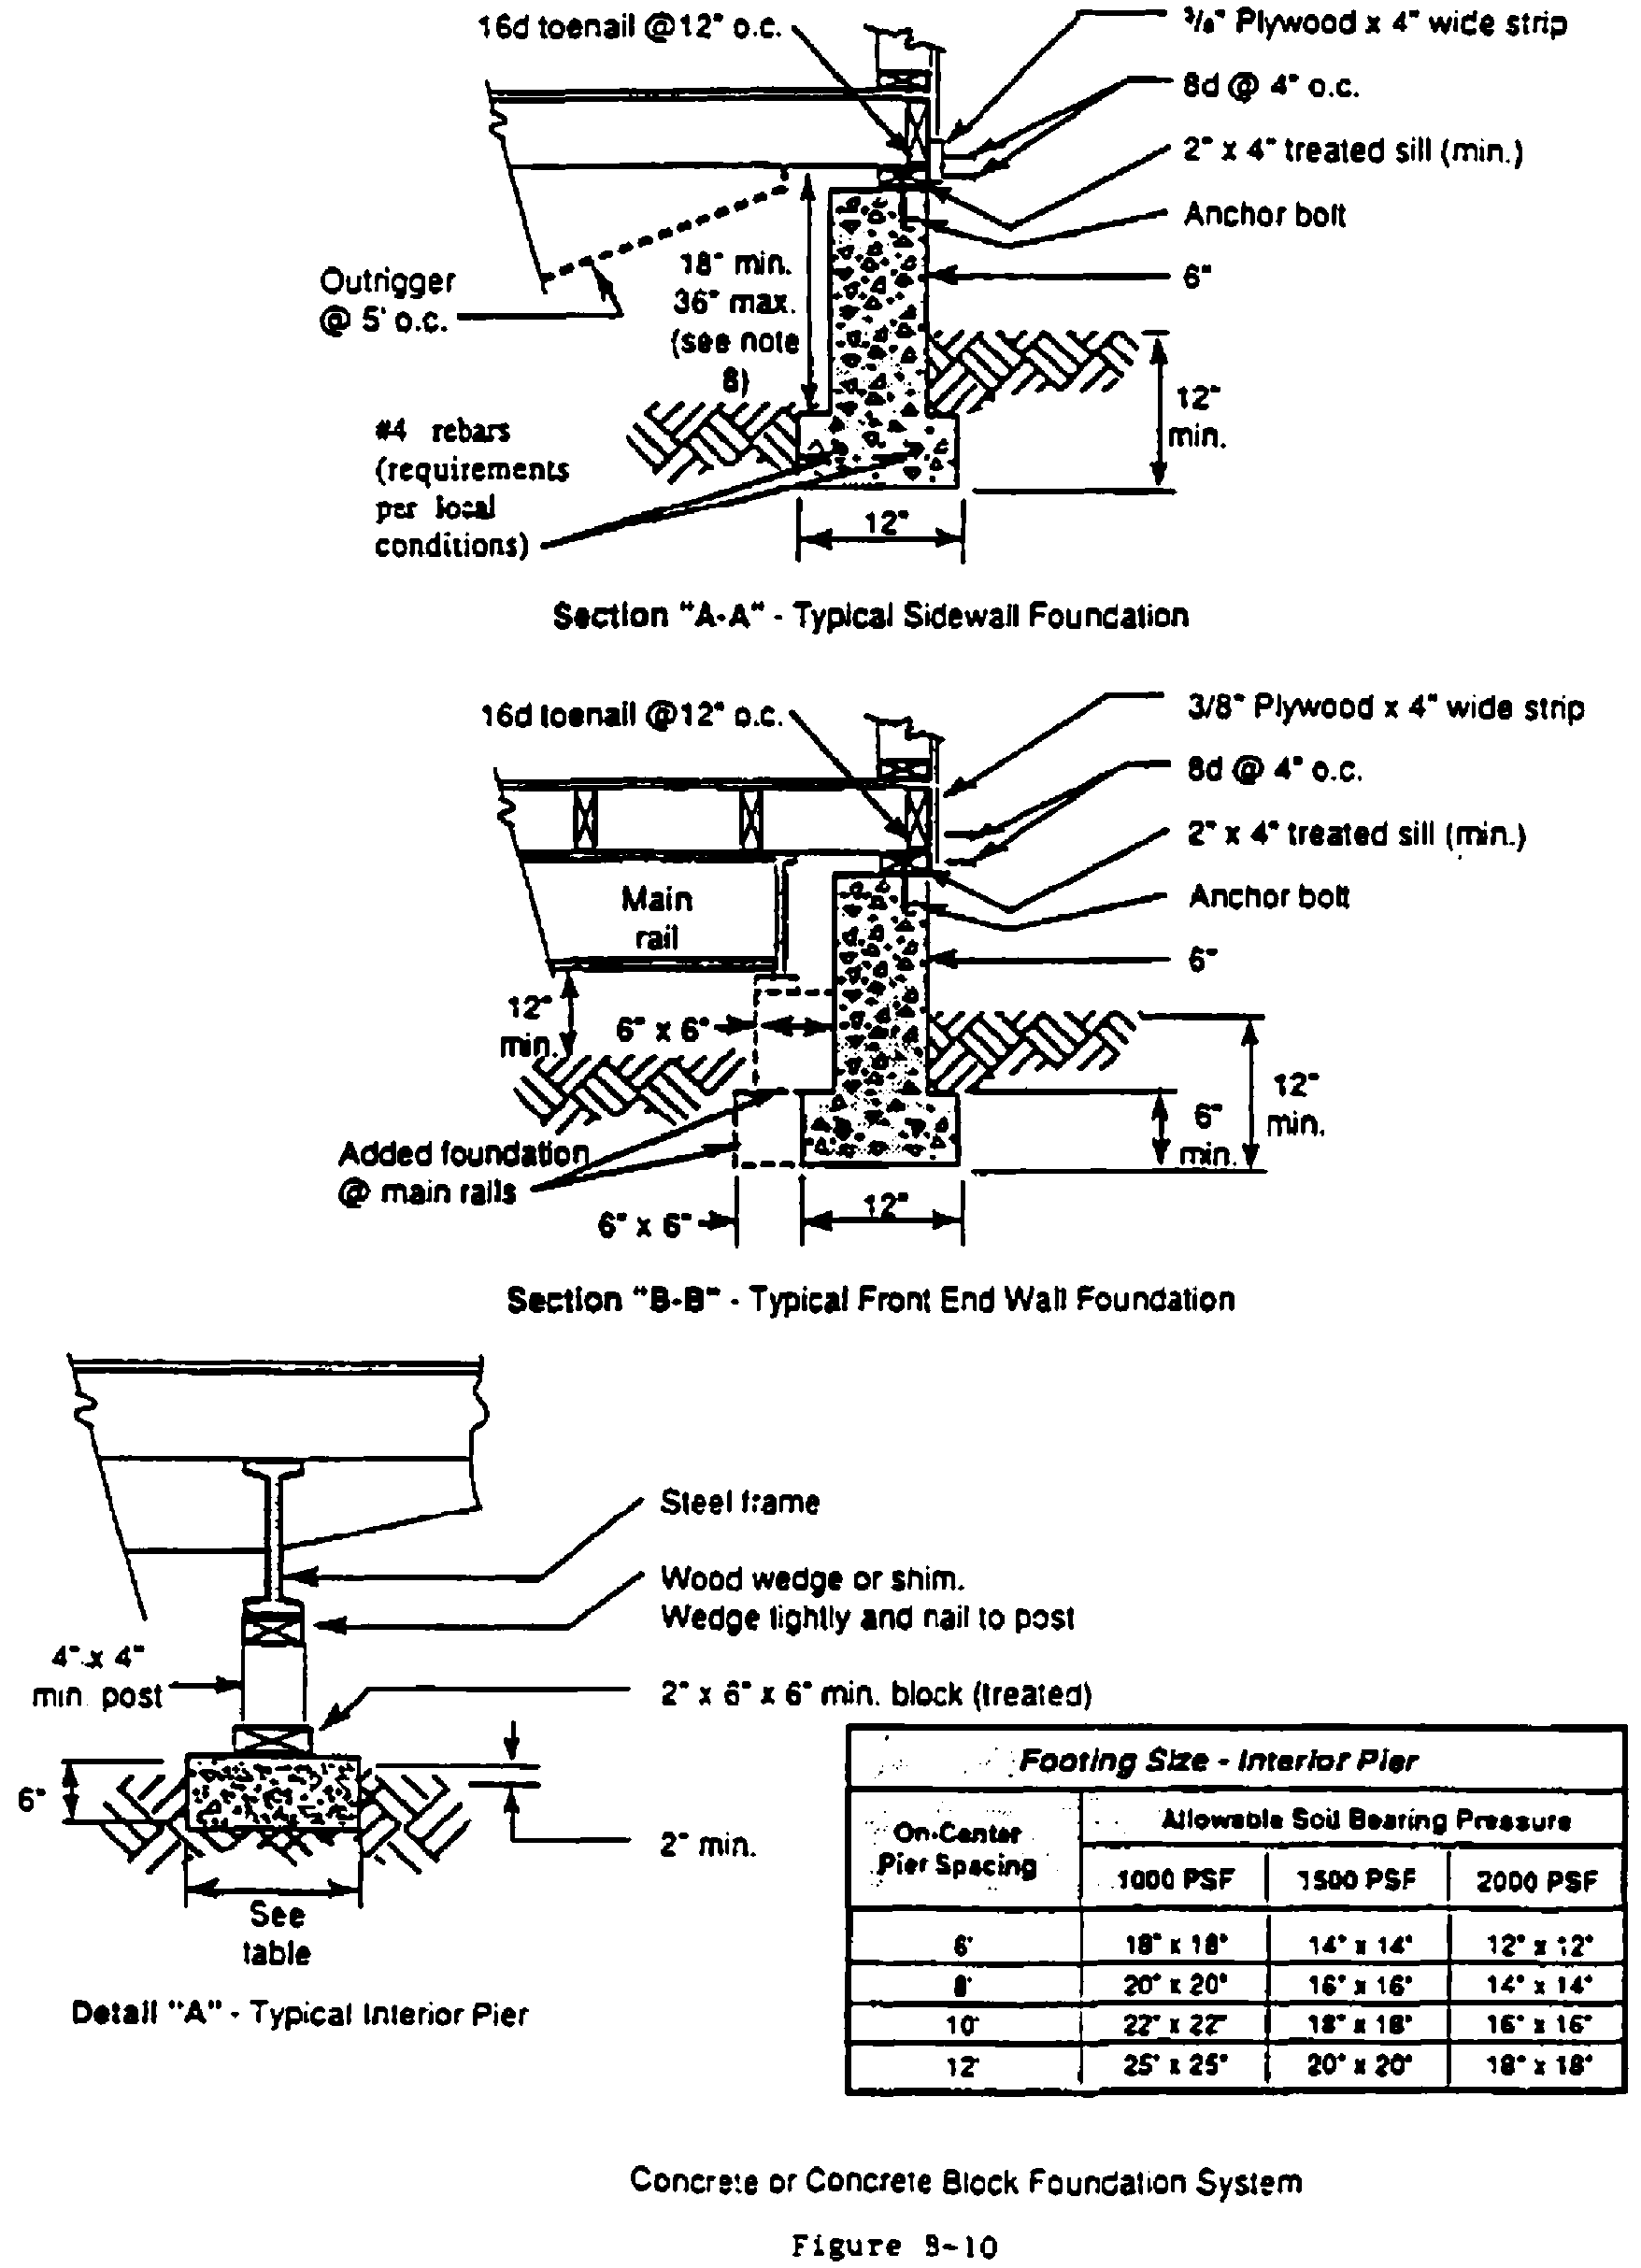 TYPICAL DESIGNS FOR LOAD-BEARING SUPPORTS FOR MANUFACTURED HOMES - Figure 8